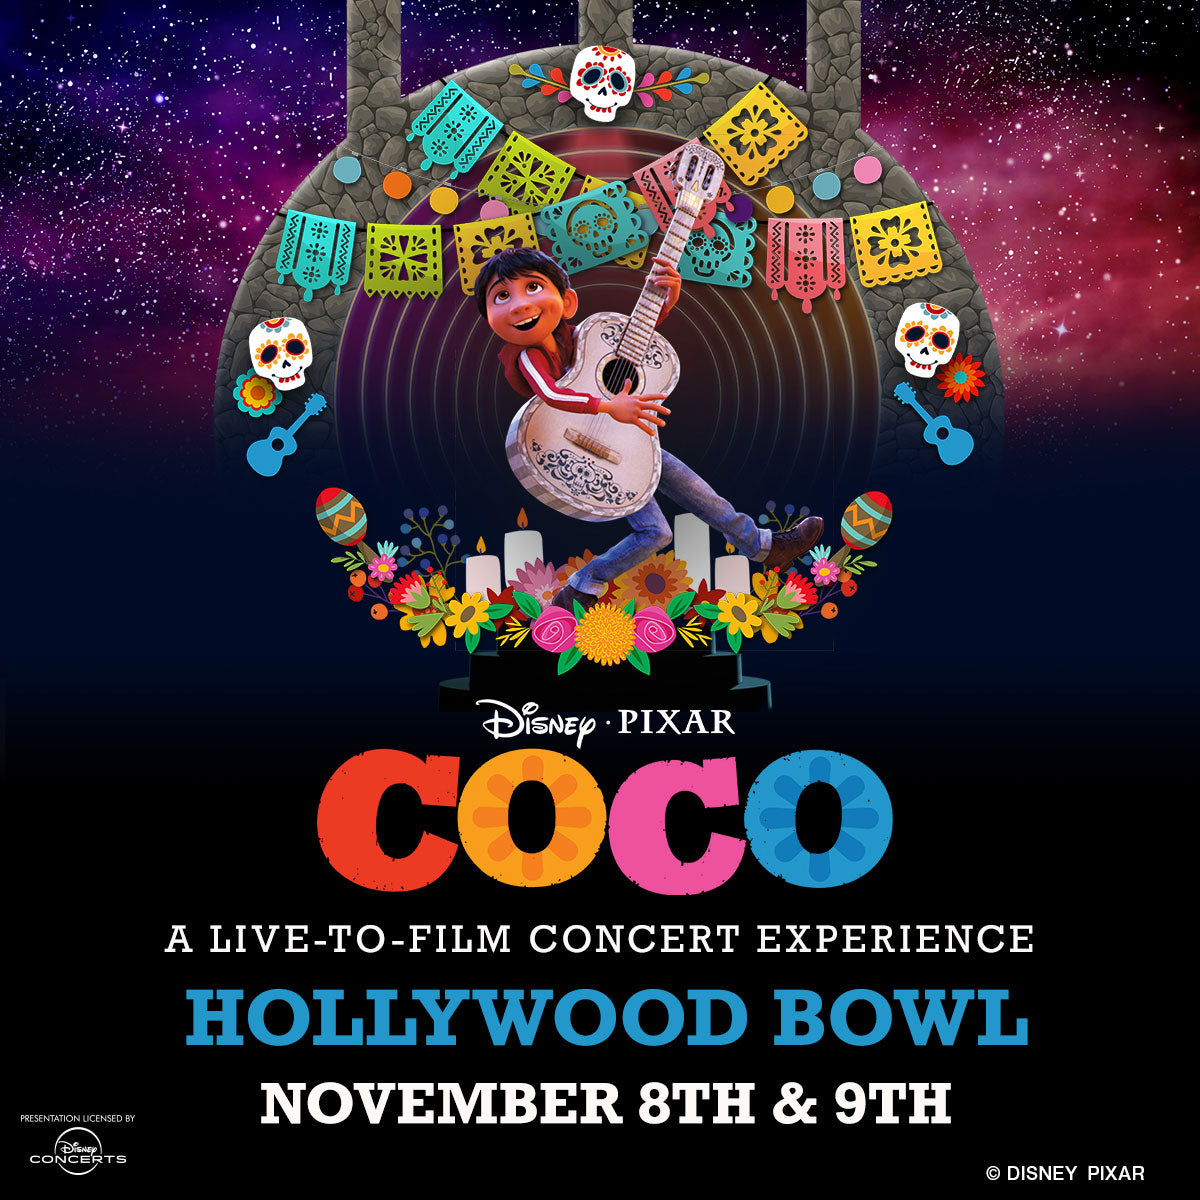 poster disney pixar coco hollywood bowl partnership with la monarca bakery. miguel cartoon character in front of cartoon hollywood bowl.